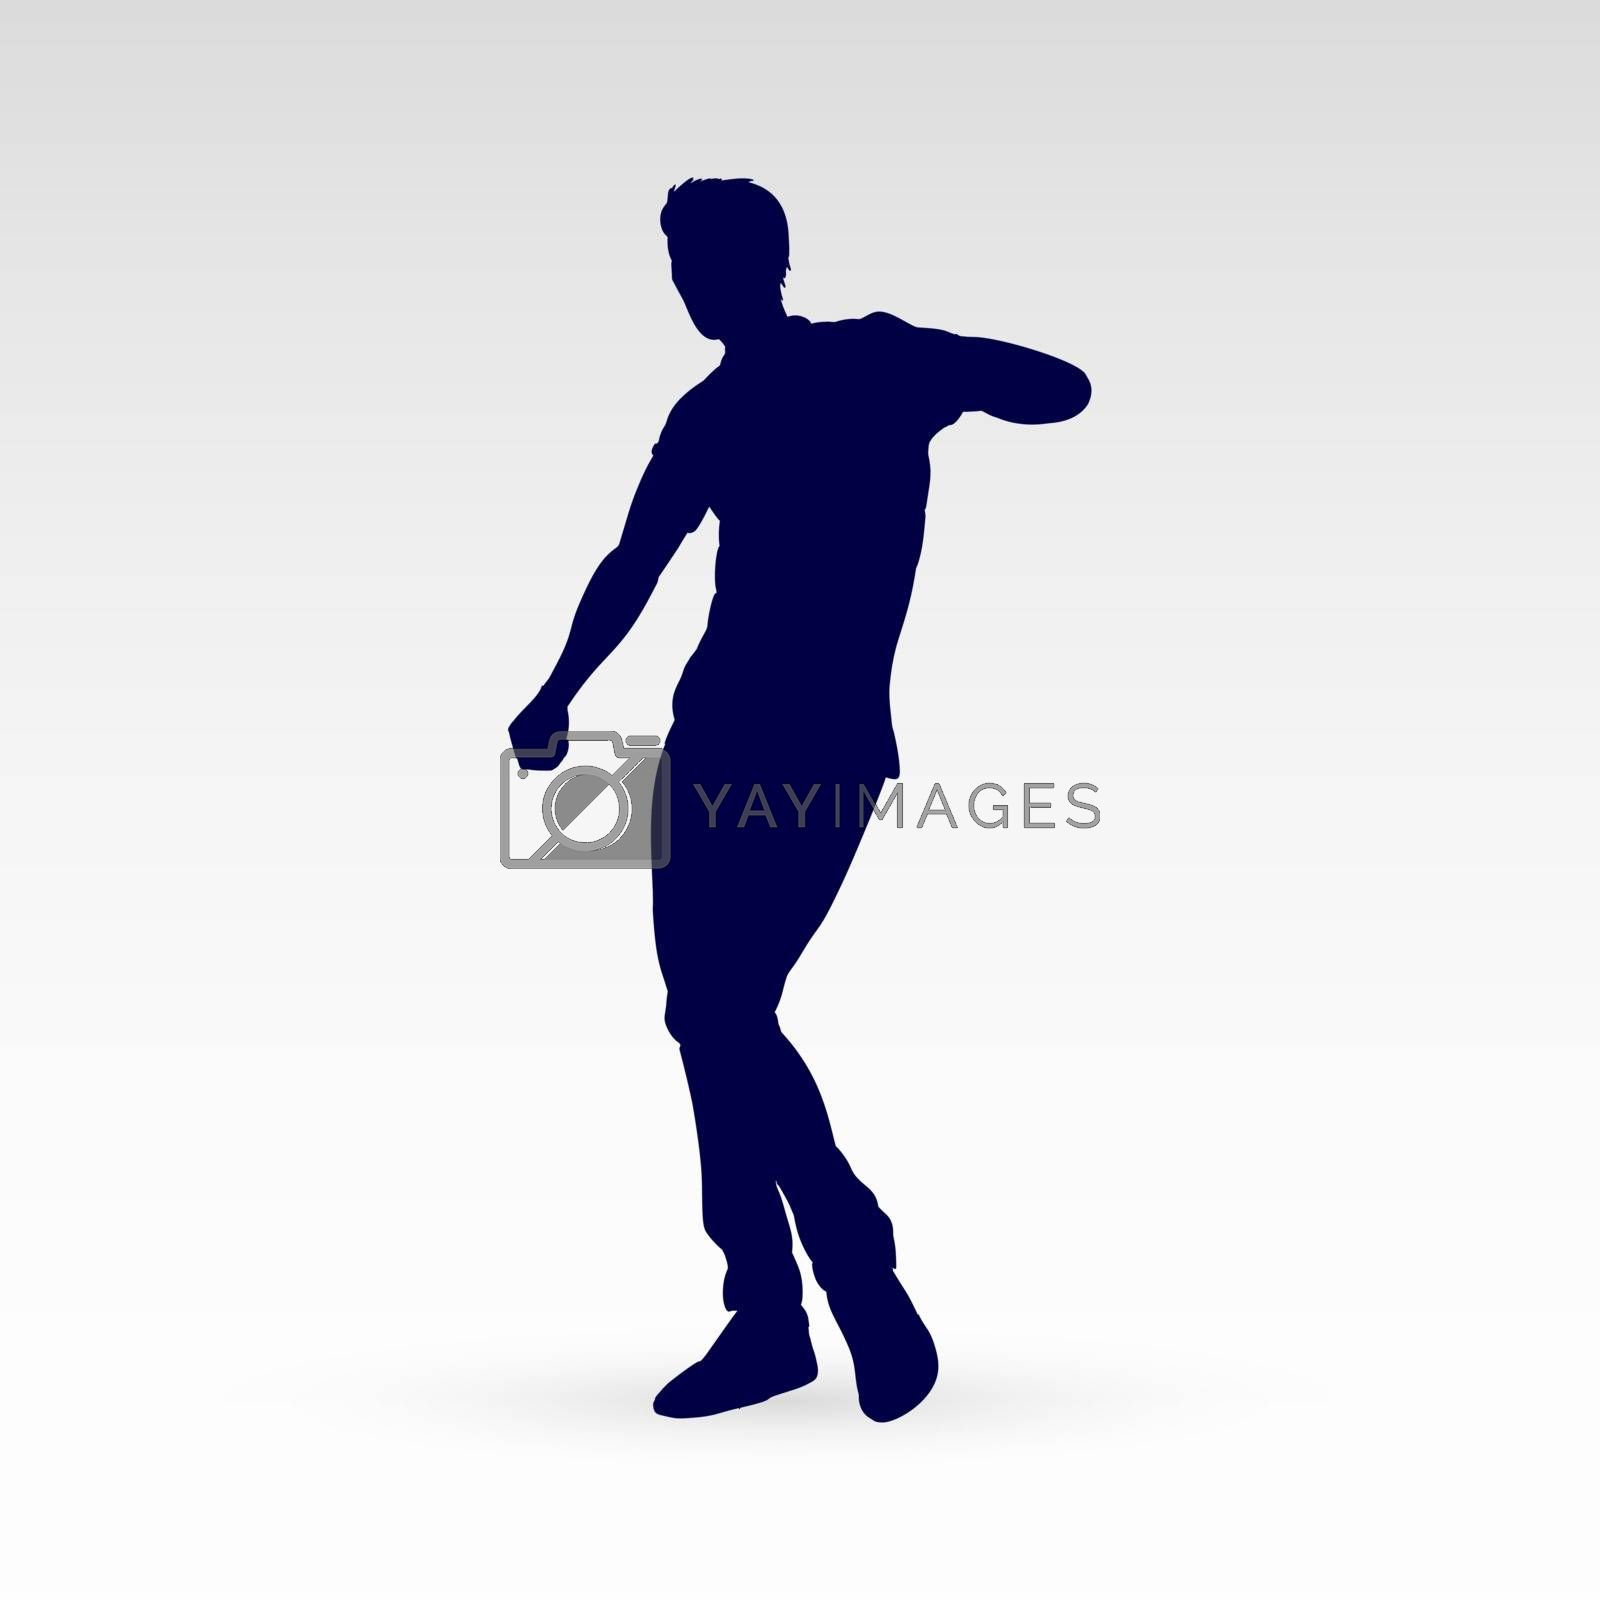 Modern Style Dancer Posing Silhouette of a Man Dancer Hip Hop Choreography on a Gray